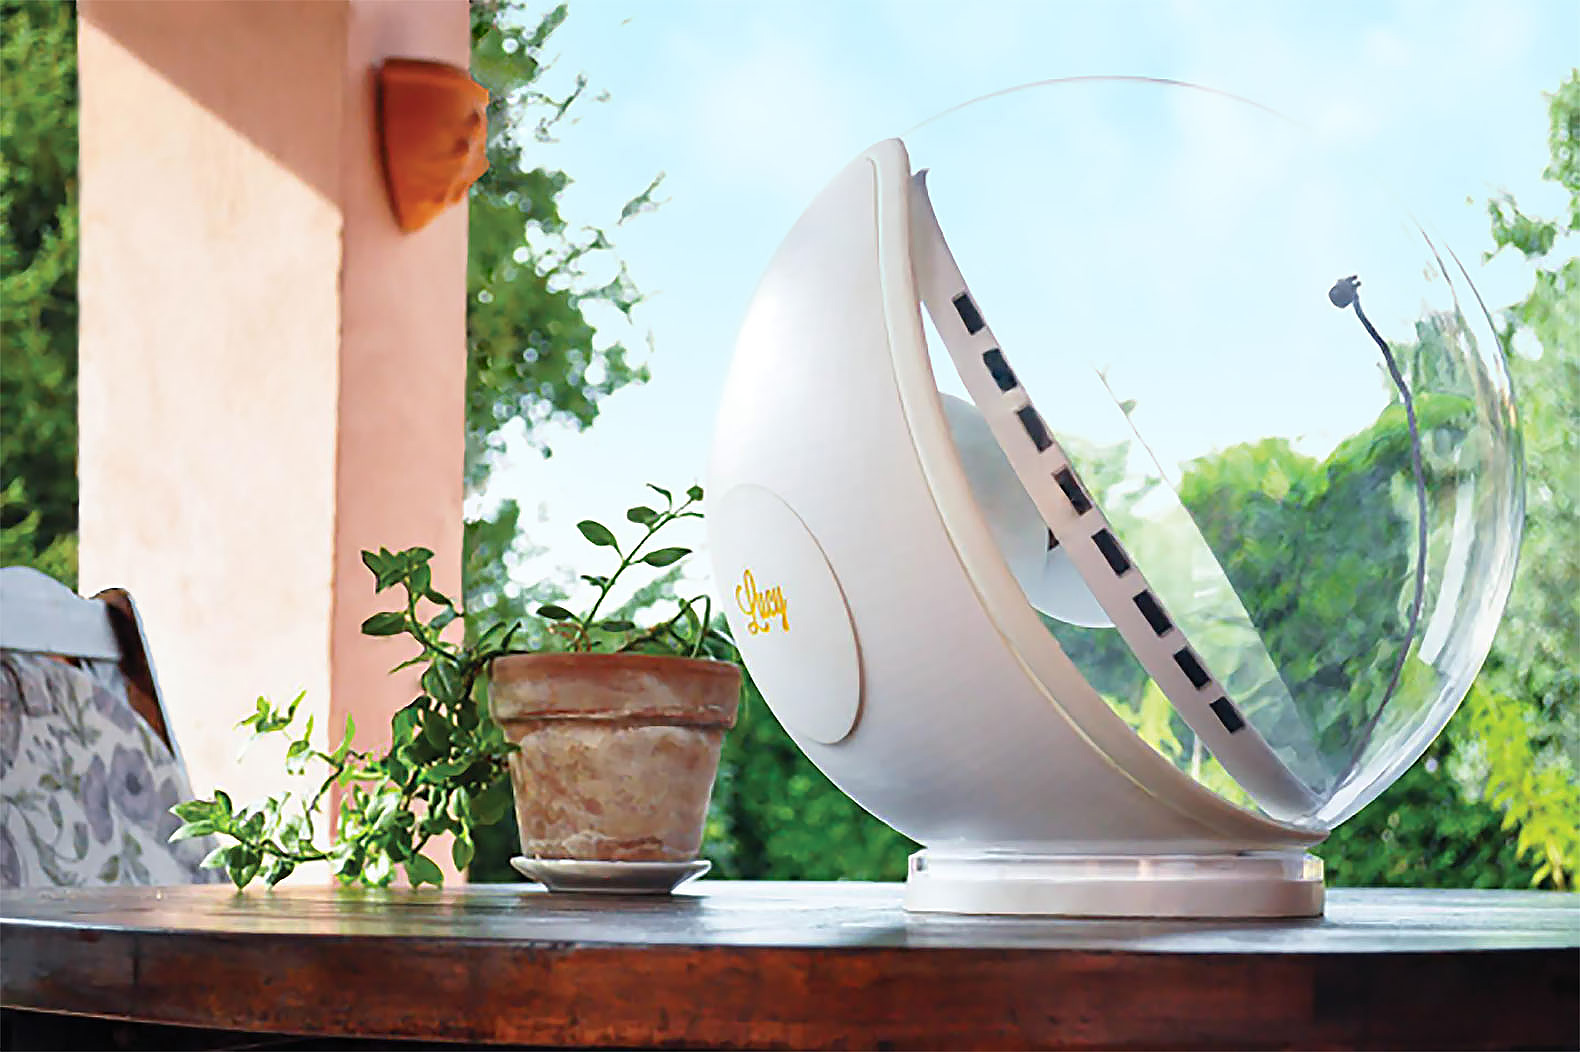 natural lighting in homes. solarpowered lucy reflects sunlight indoors to brighten any room natural lighting in homes